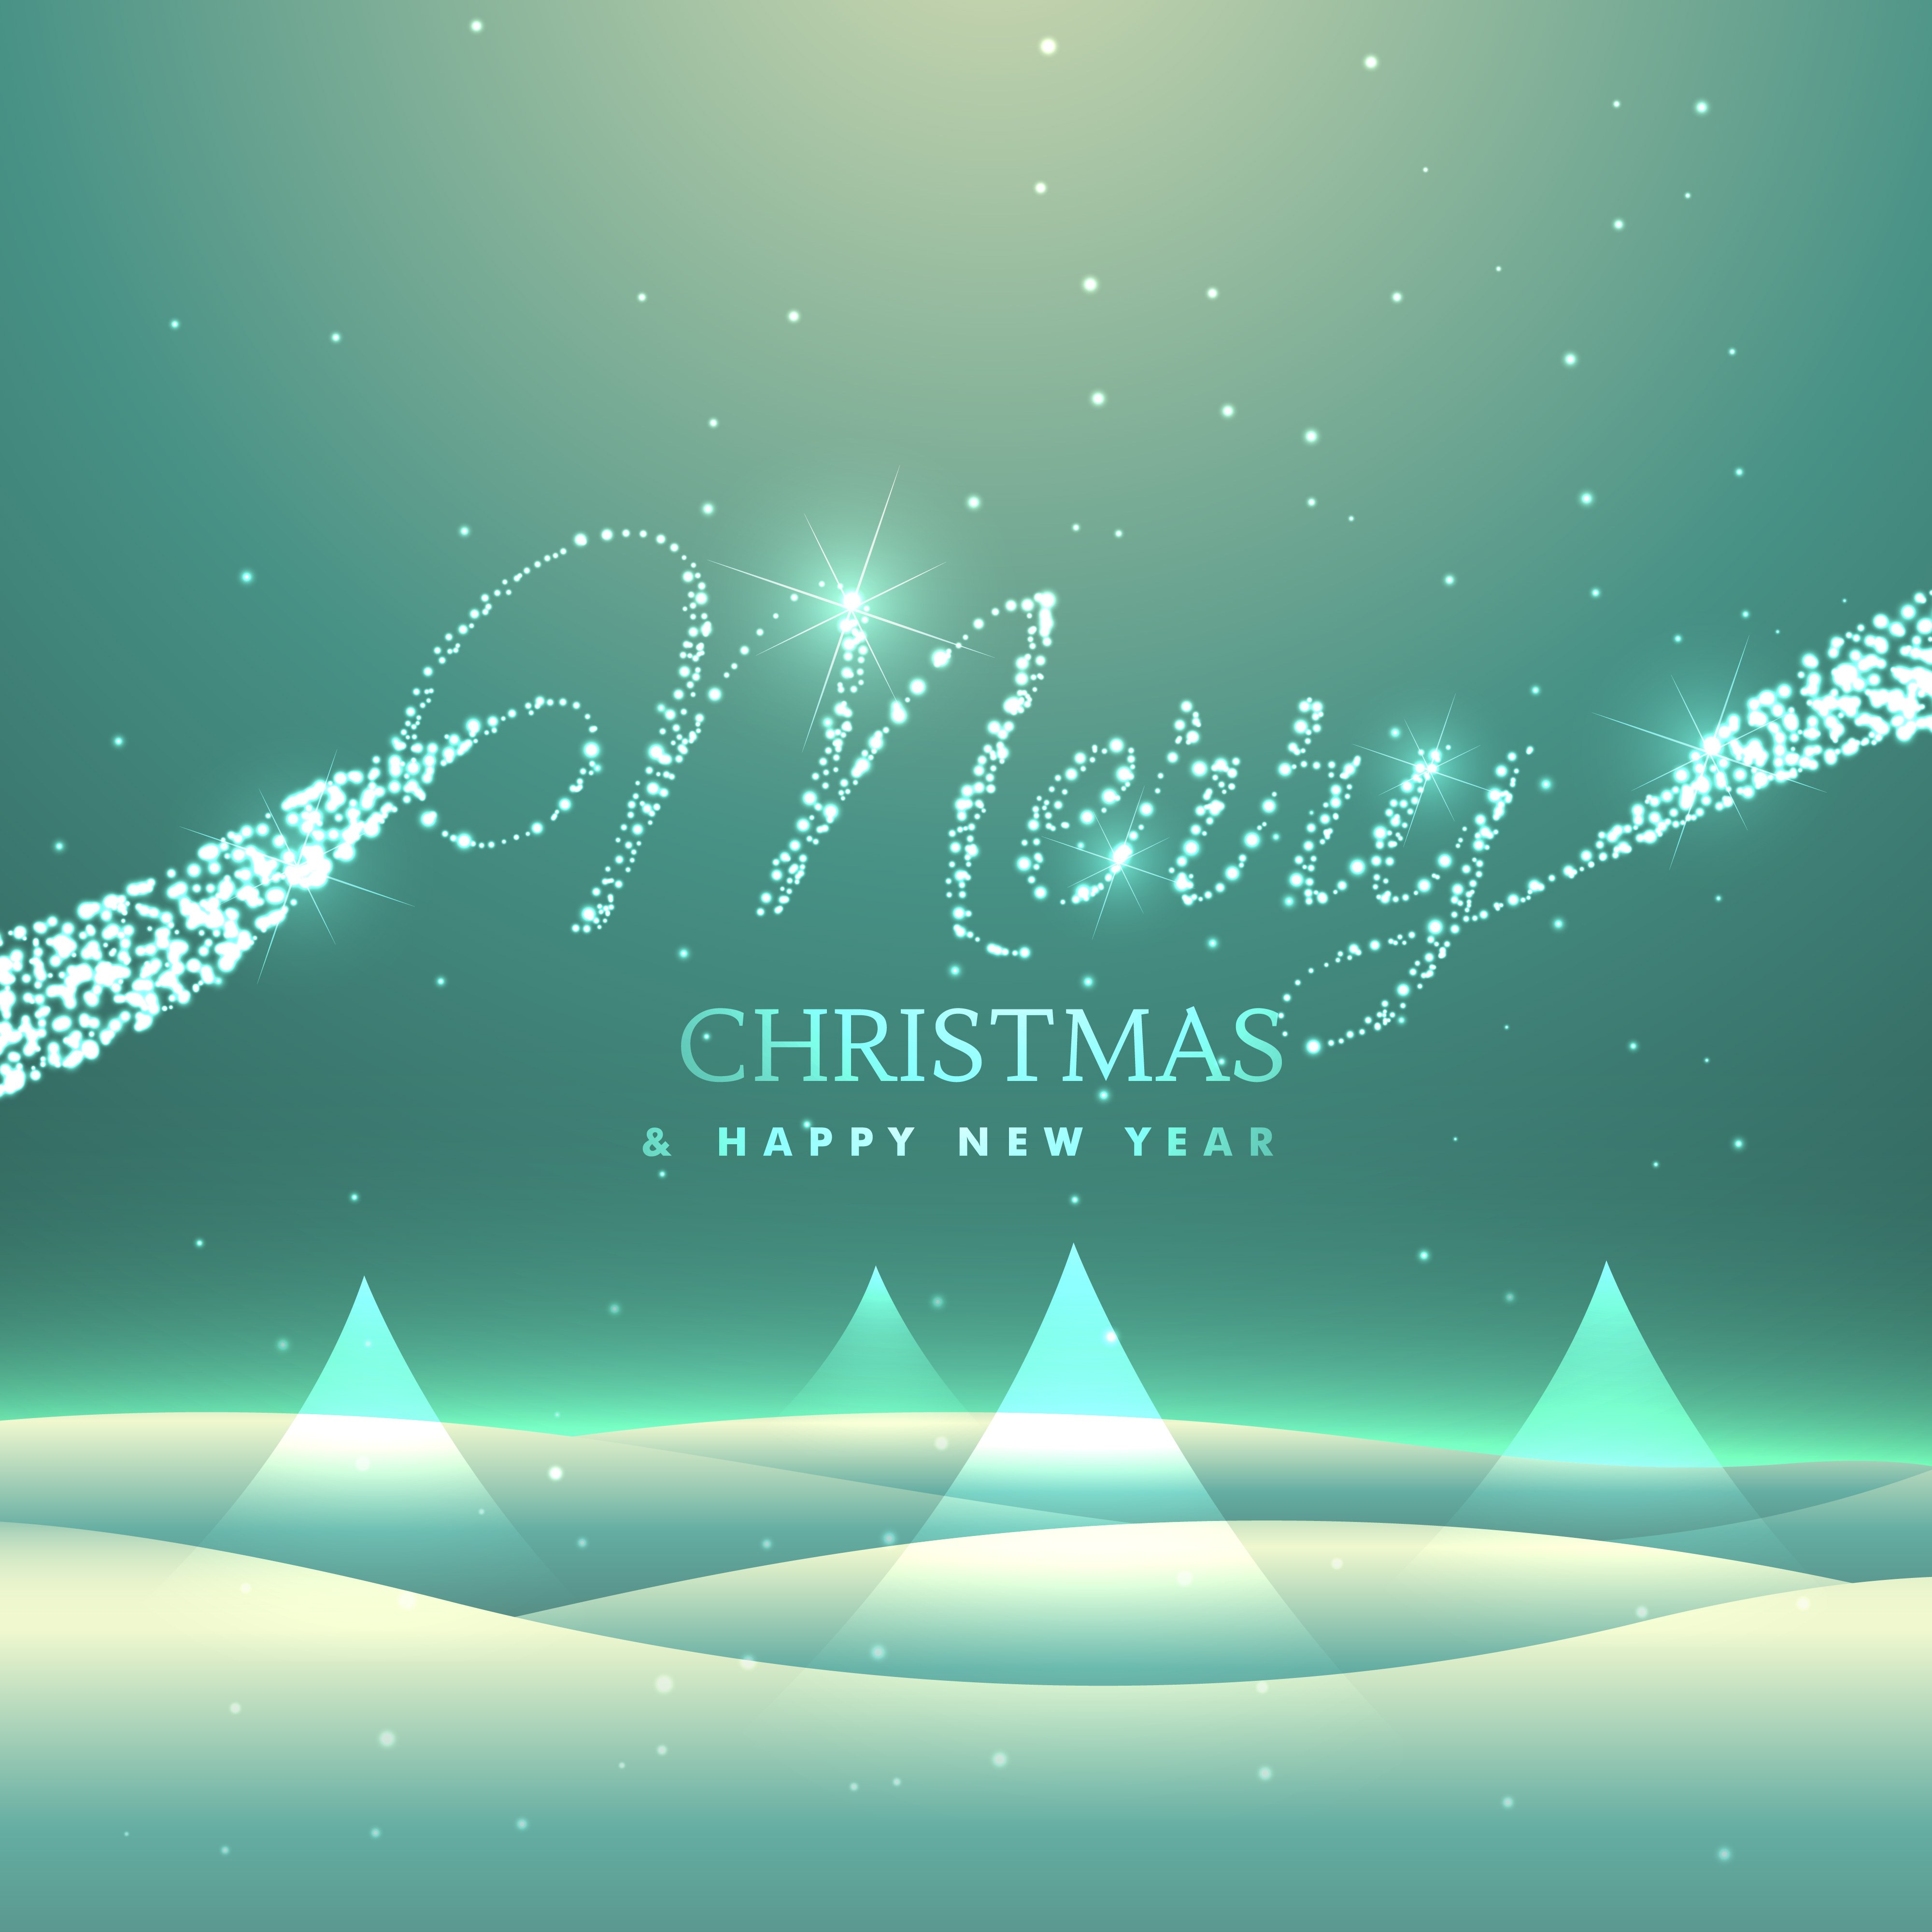 Magical Merry Christmas Greeting Card Design With Snowly